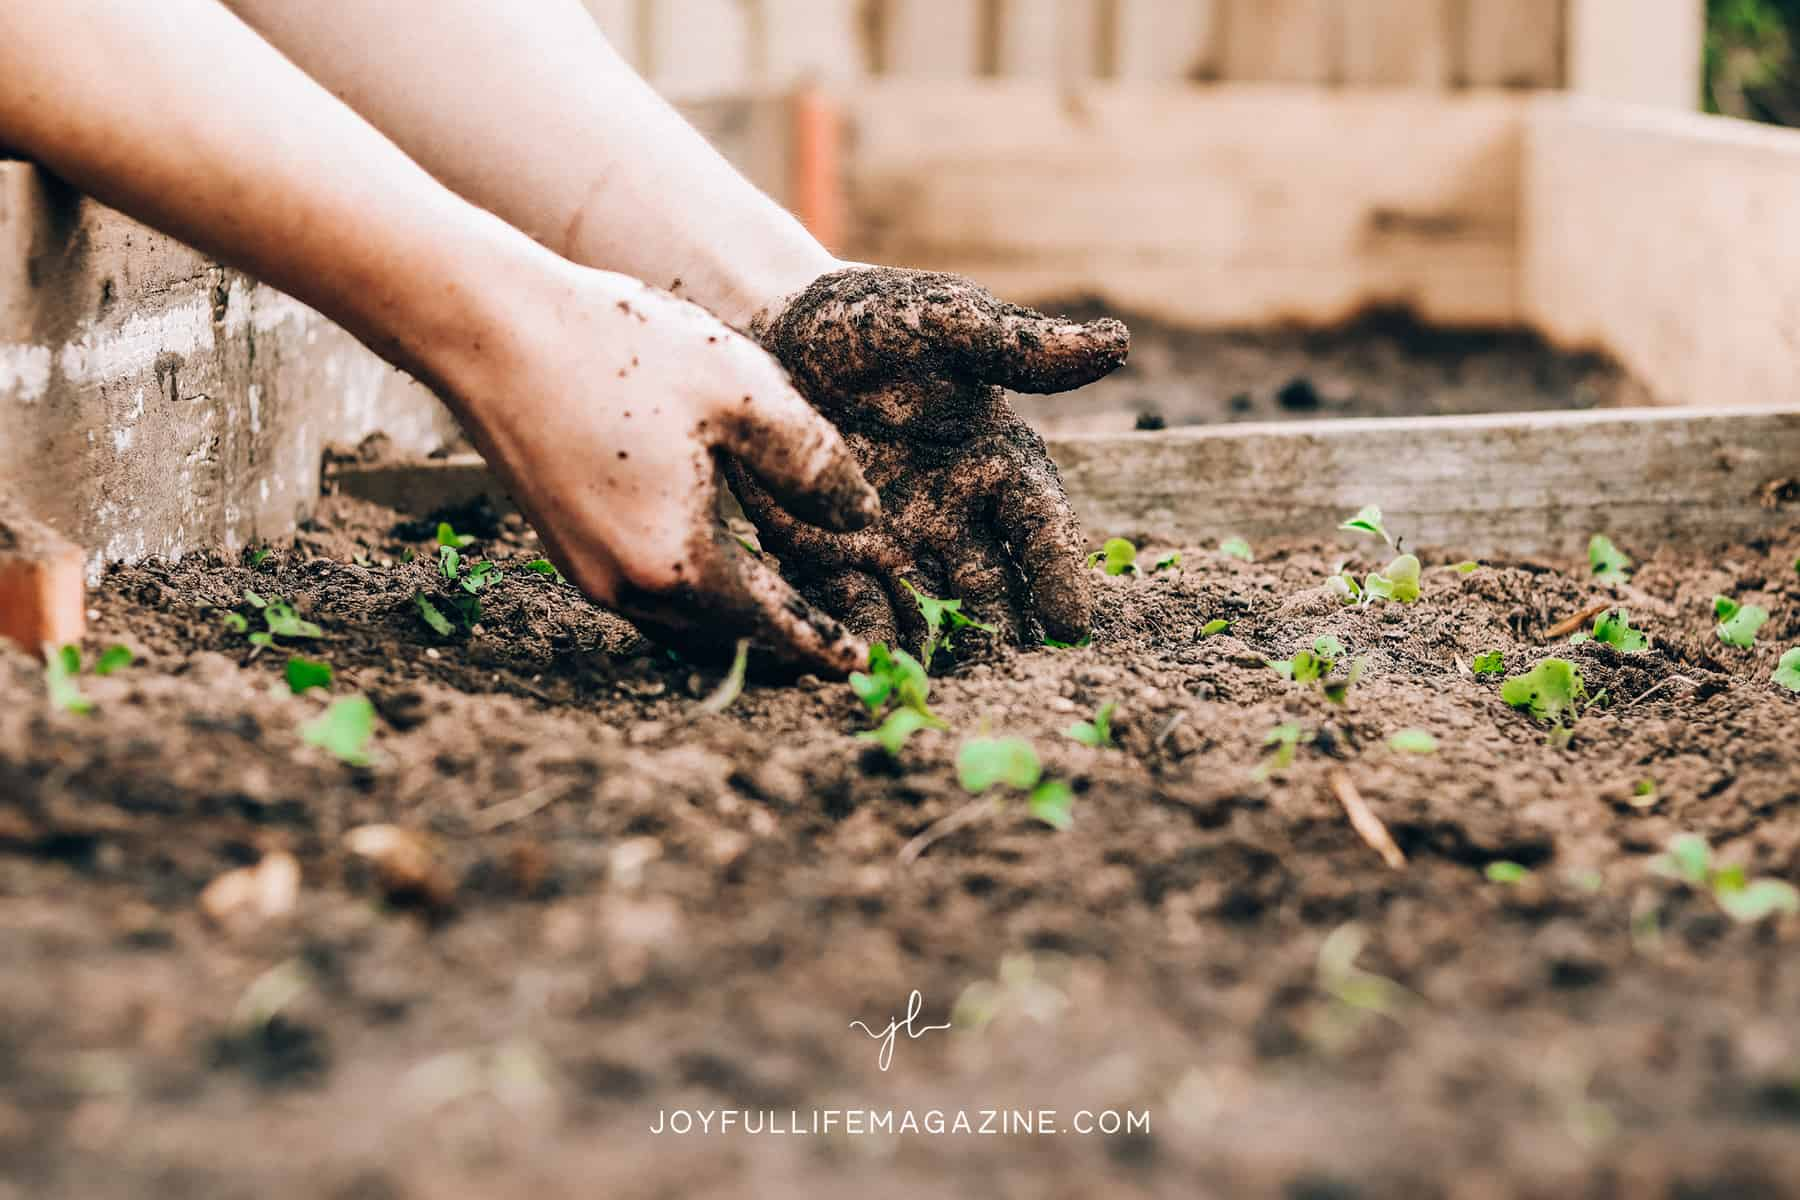 Hands reaching into soil.